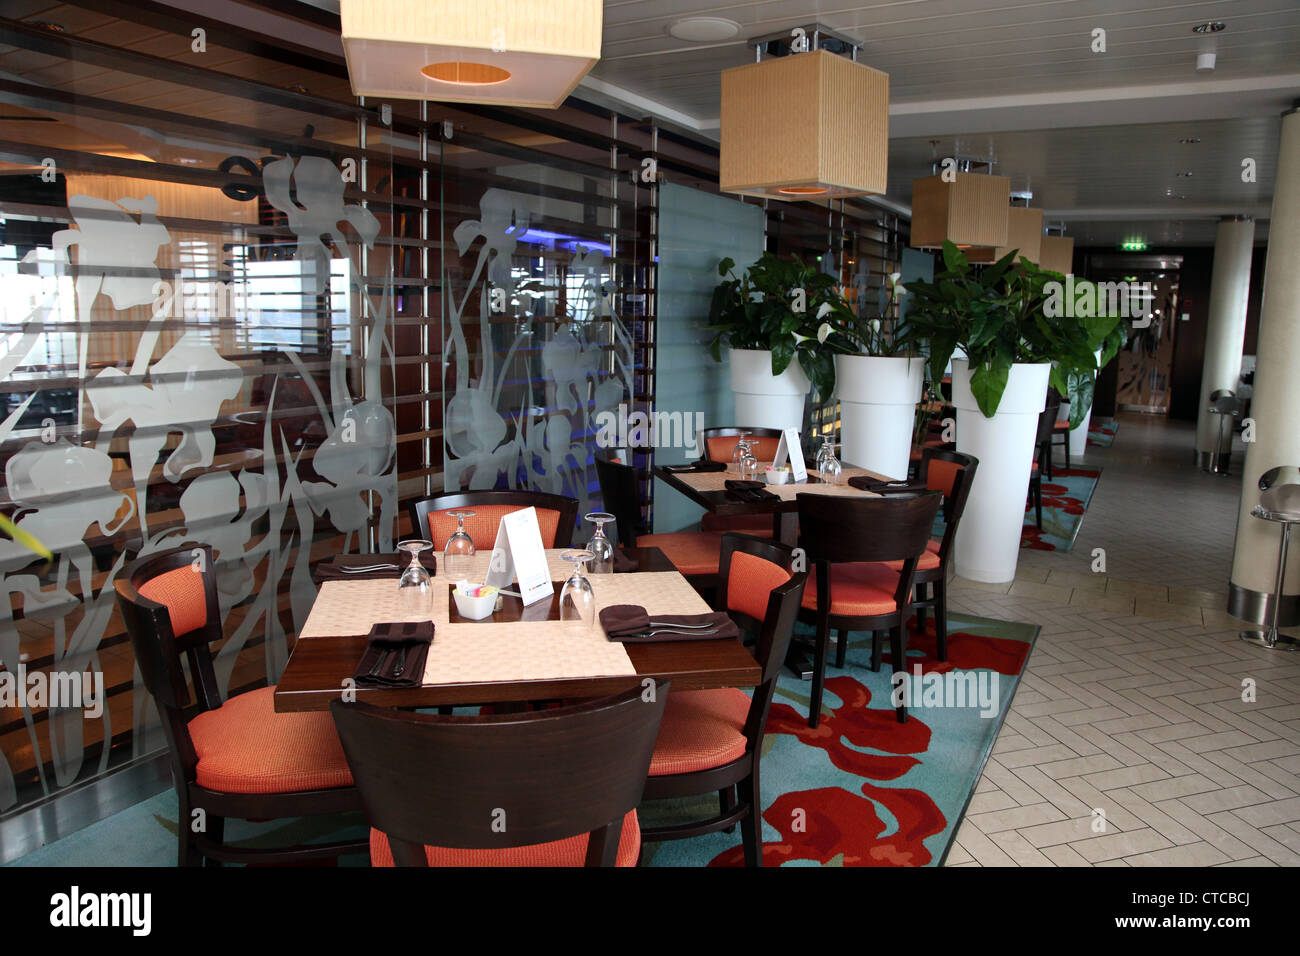 Bistro on Five, creperie on the Celebrity Solstice, luxury cruise ship - Stock Image